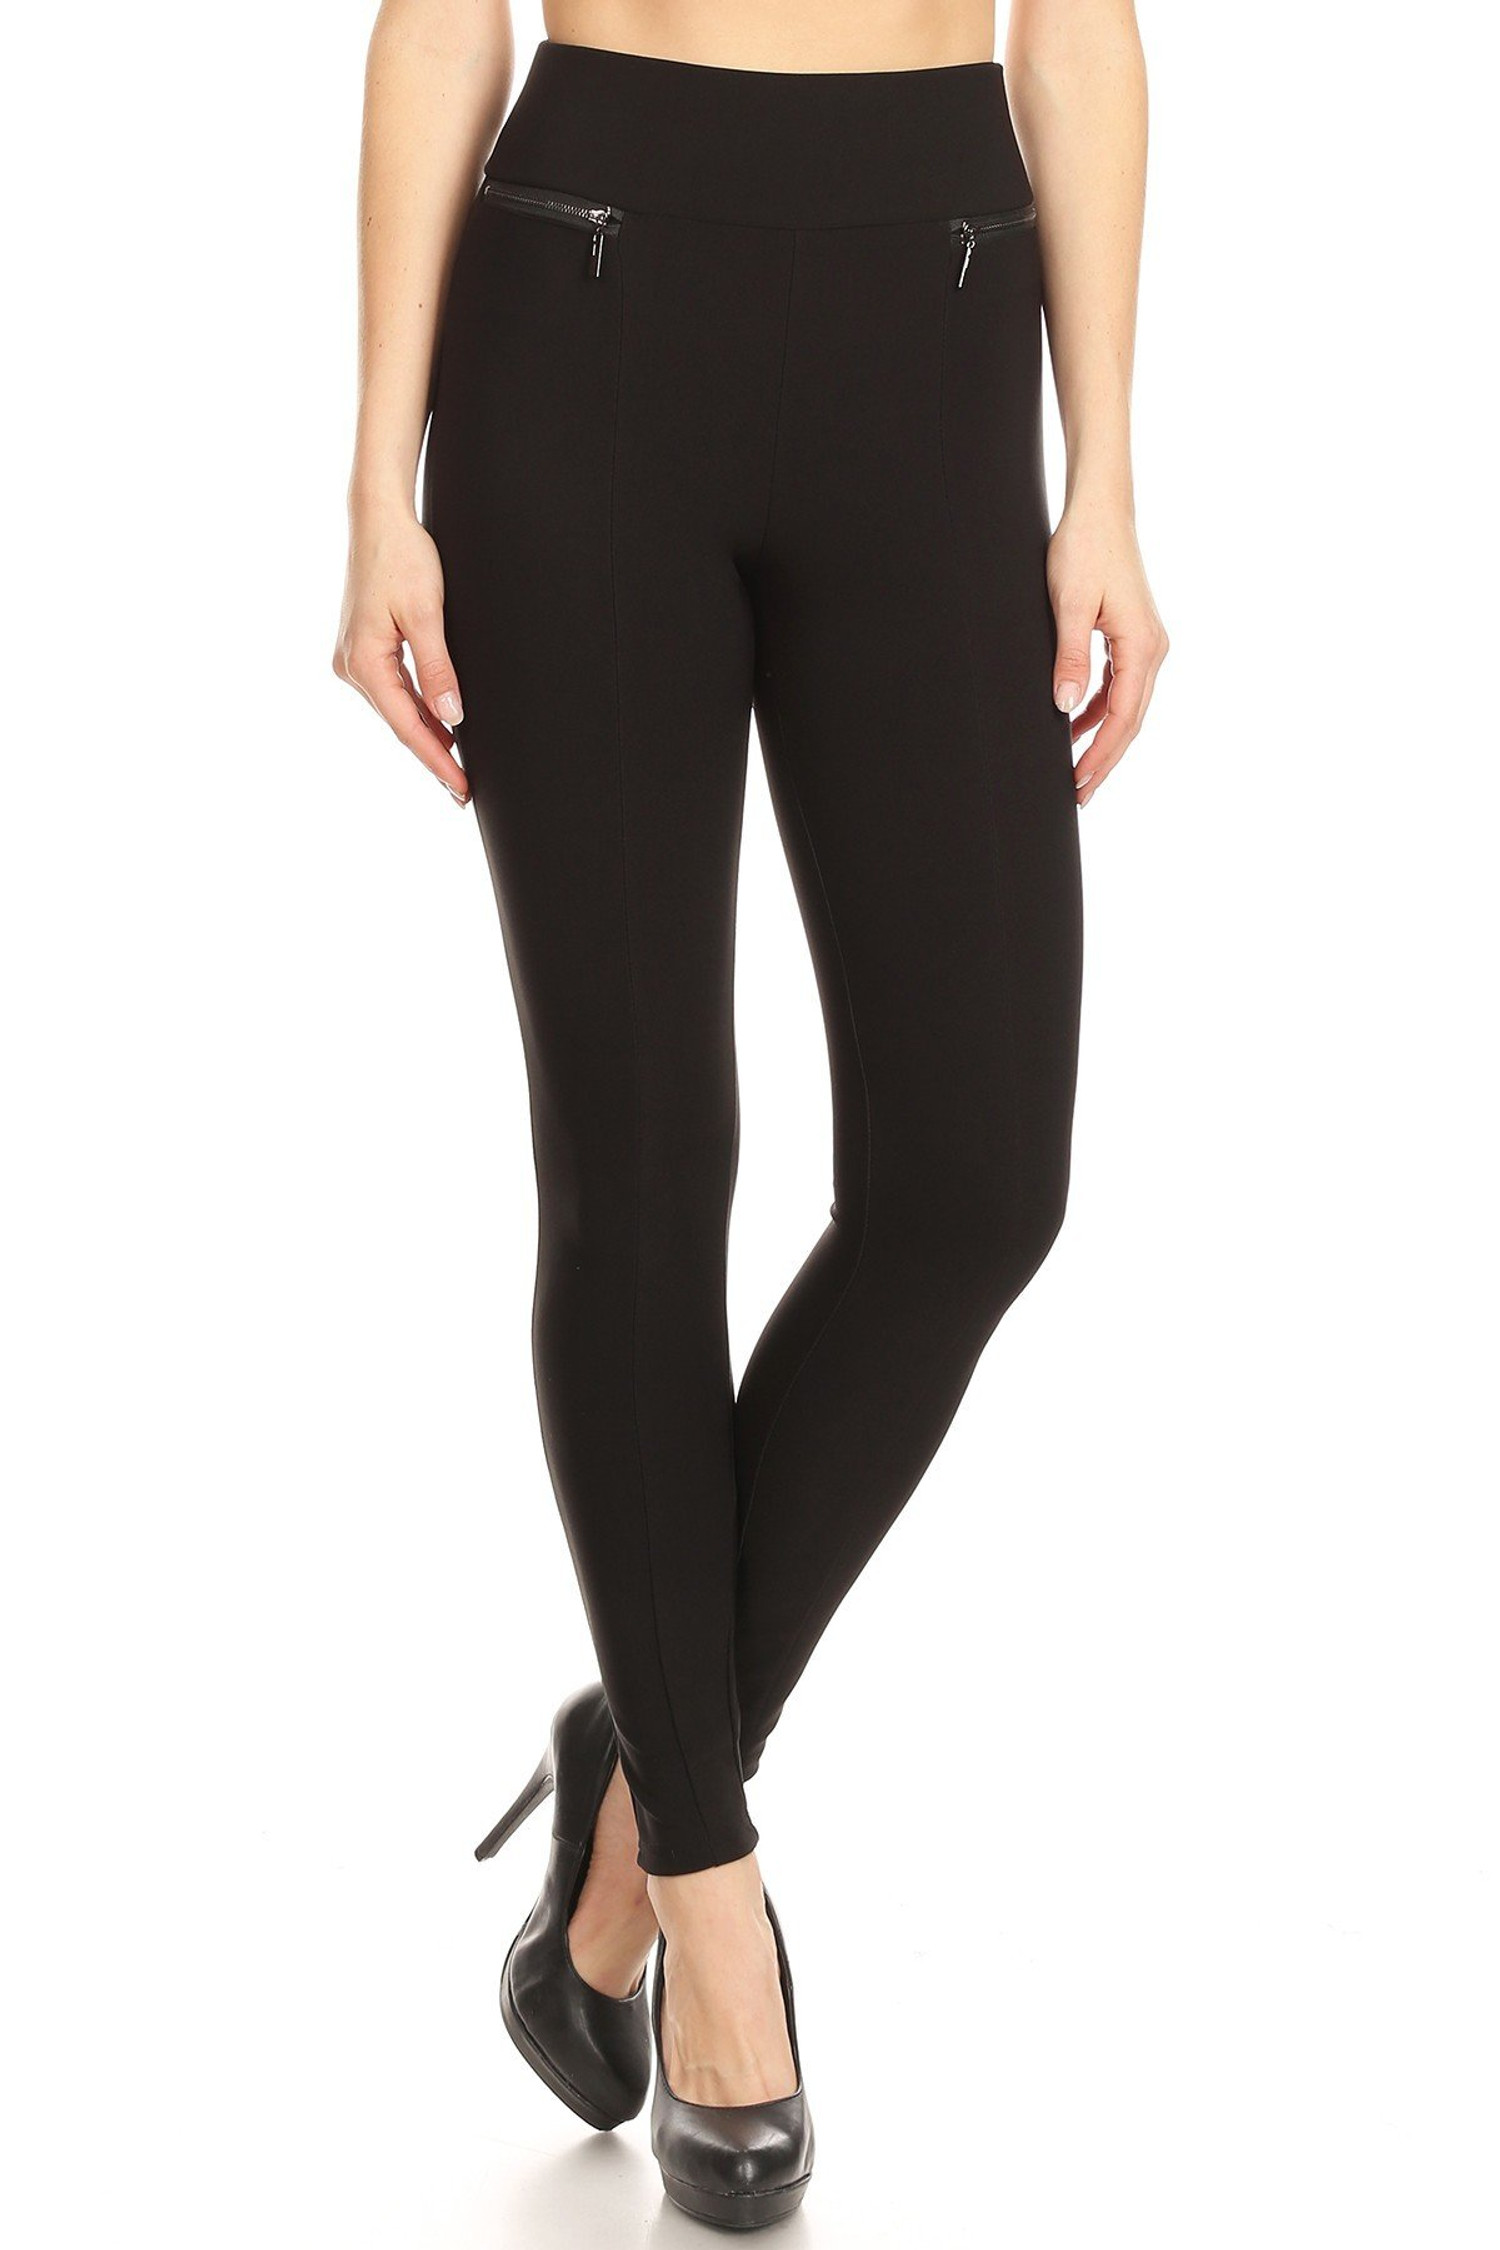 Black High Waisted Body Sculpting Treggings with Zipper Pockets